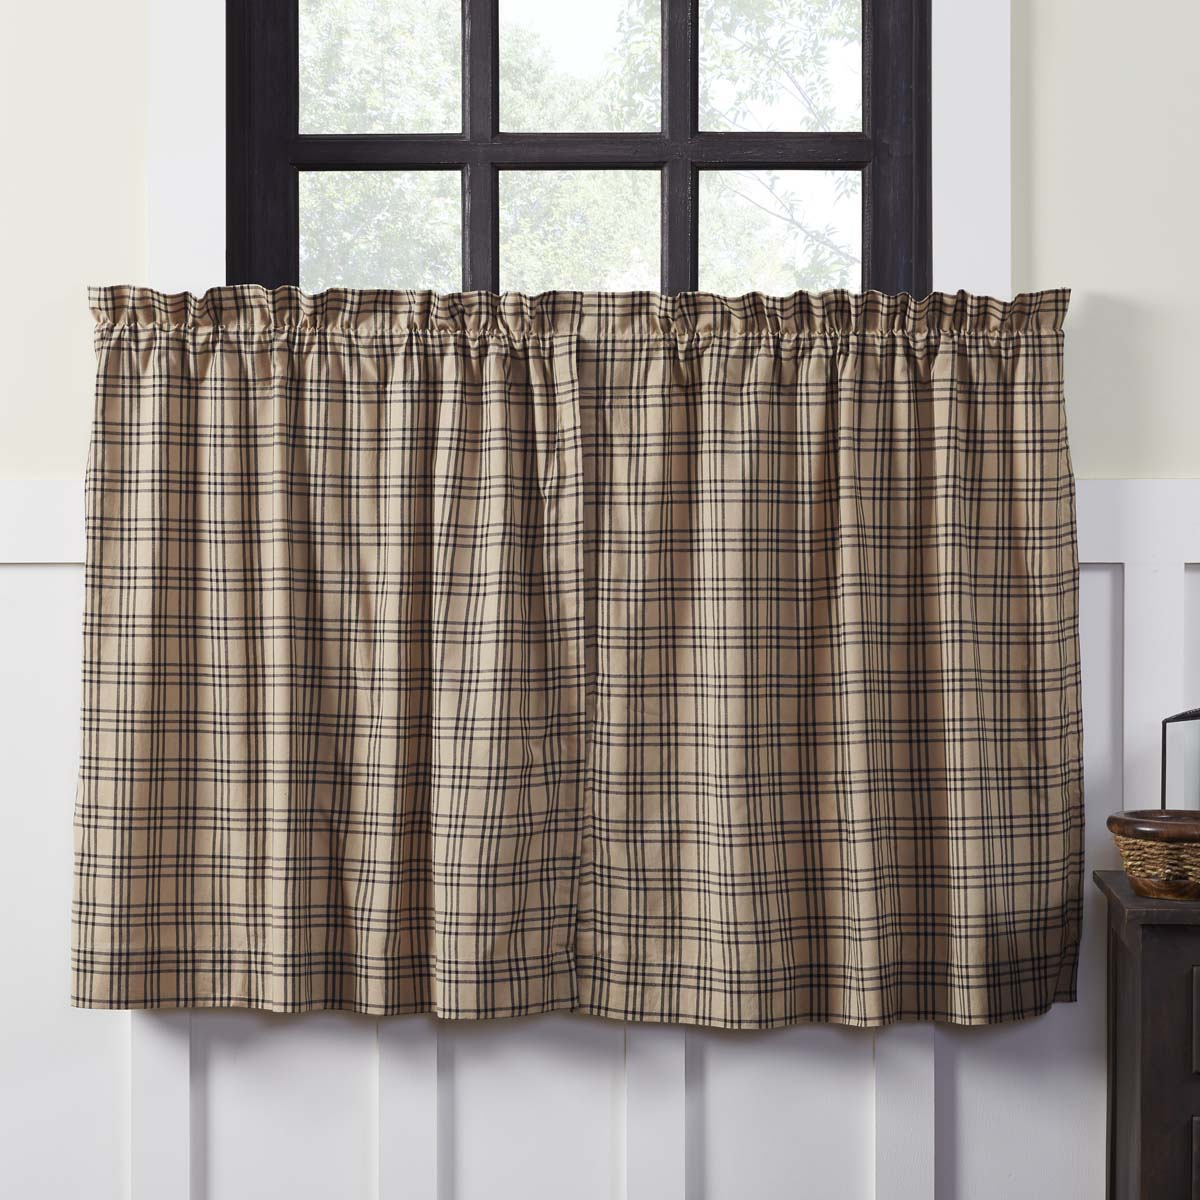 Sawyer Mill Charcoal Plaid Tier Curtain Set of 2 L36xW36 - Woodrol